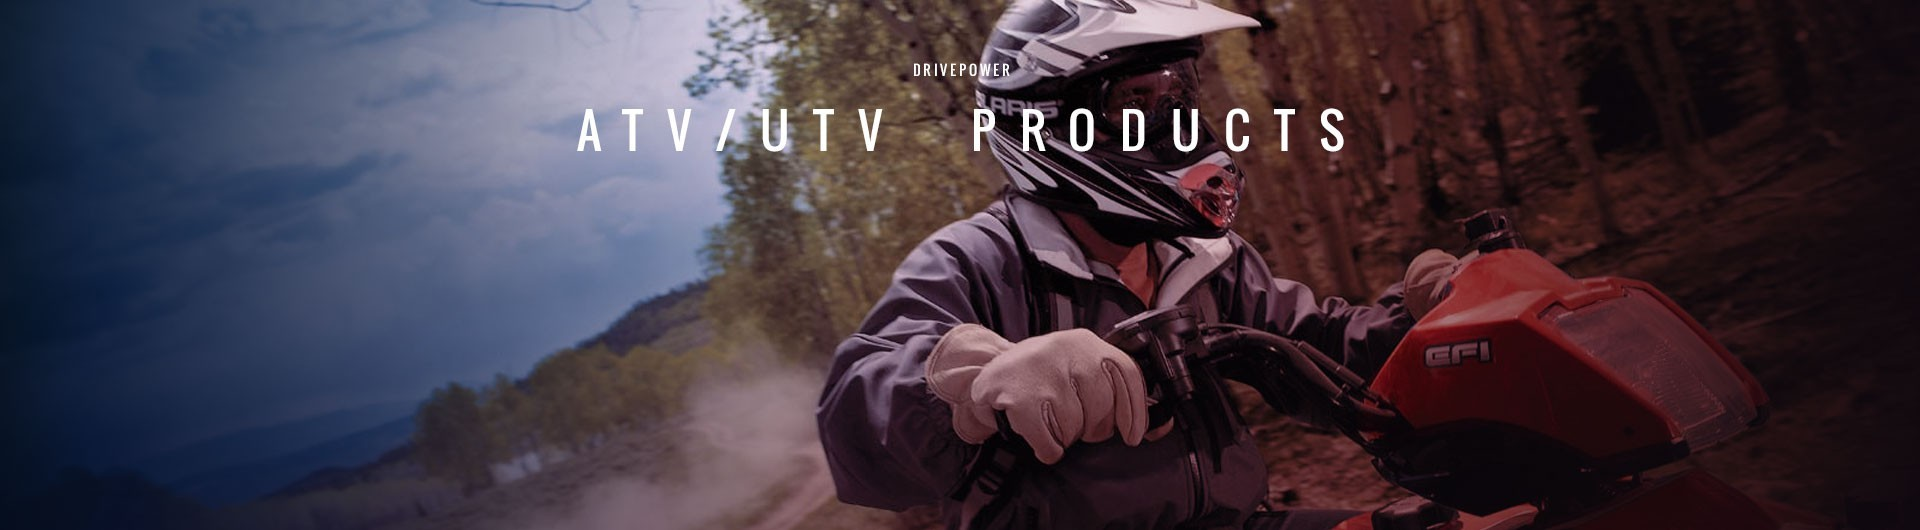 Drivepower ATV Products